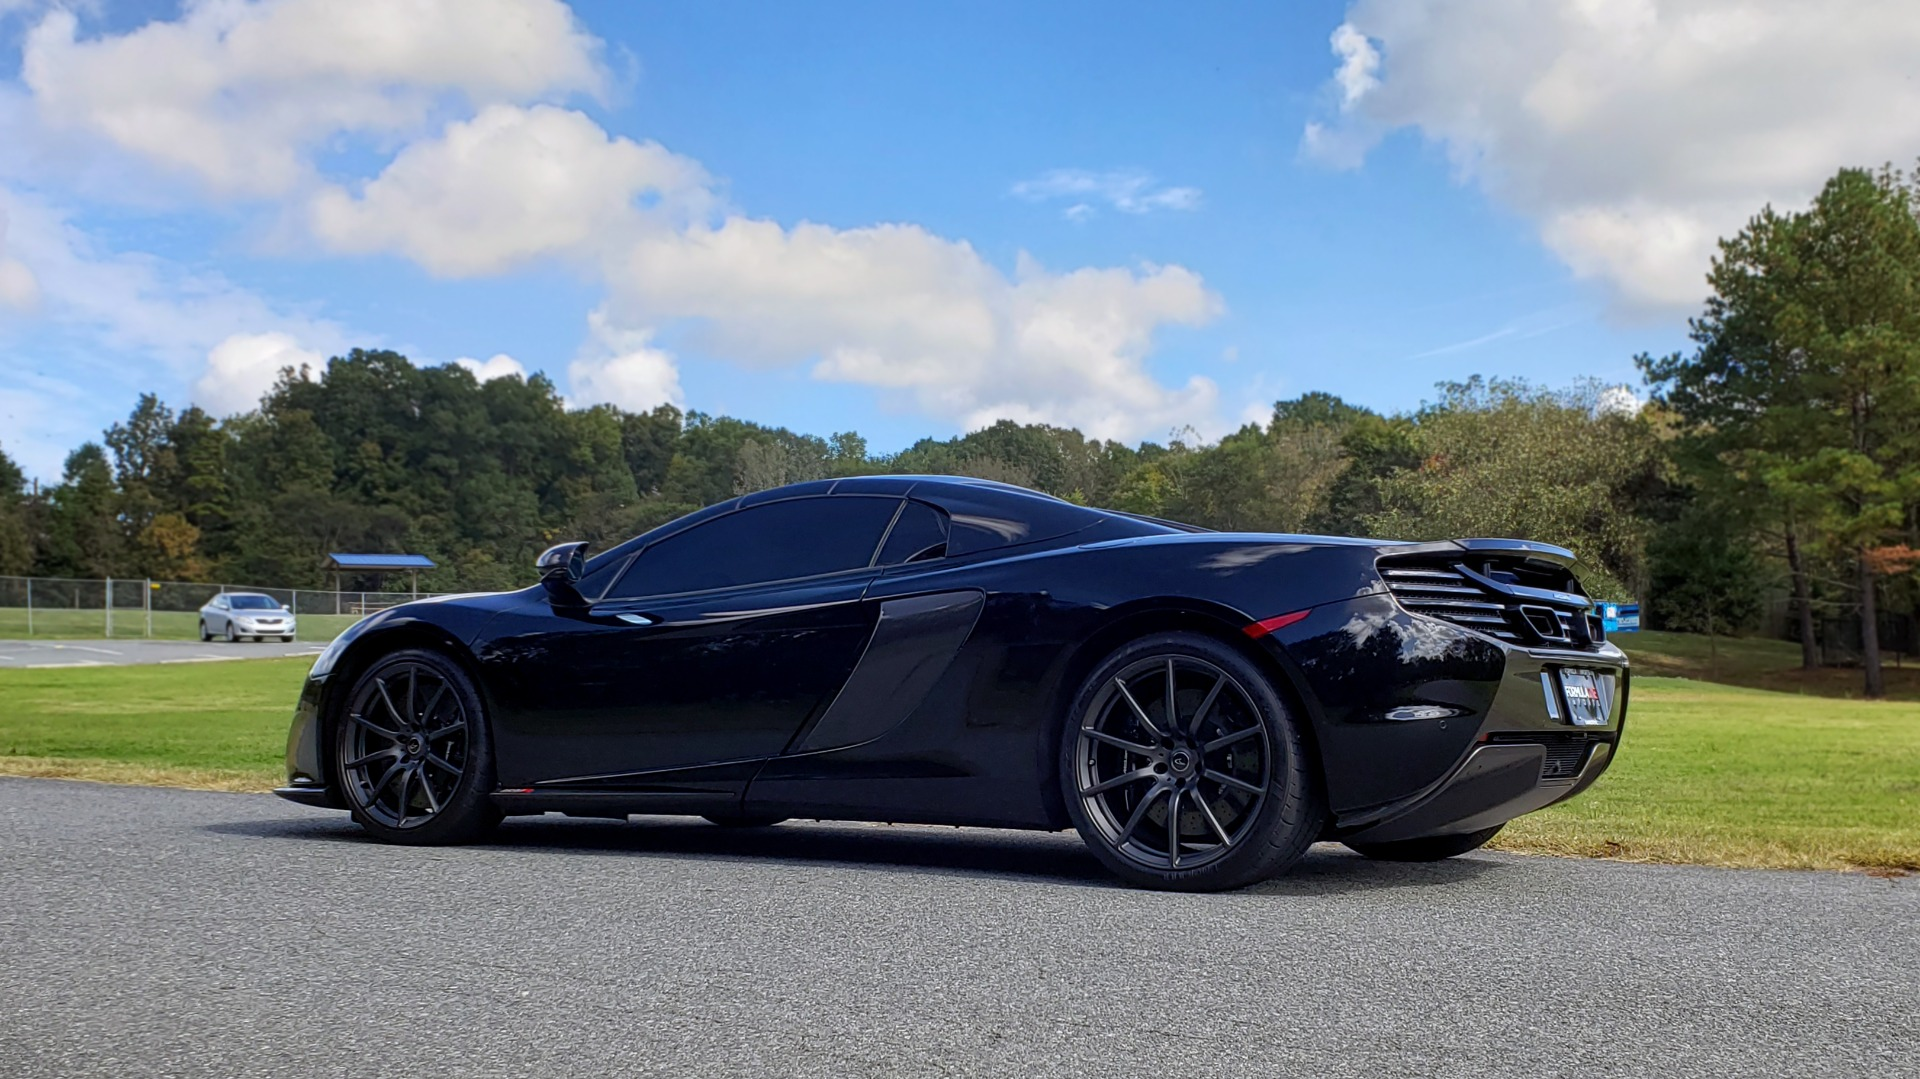 Used 2016 McLaren 650S SPIDER / 641HP / PARK SENSORS / LOW MILES / 1-OWNER for sale Sold at Formula Imports in Charlotte NC 28227 7